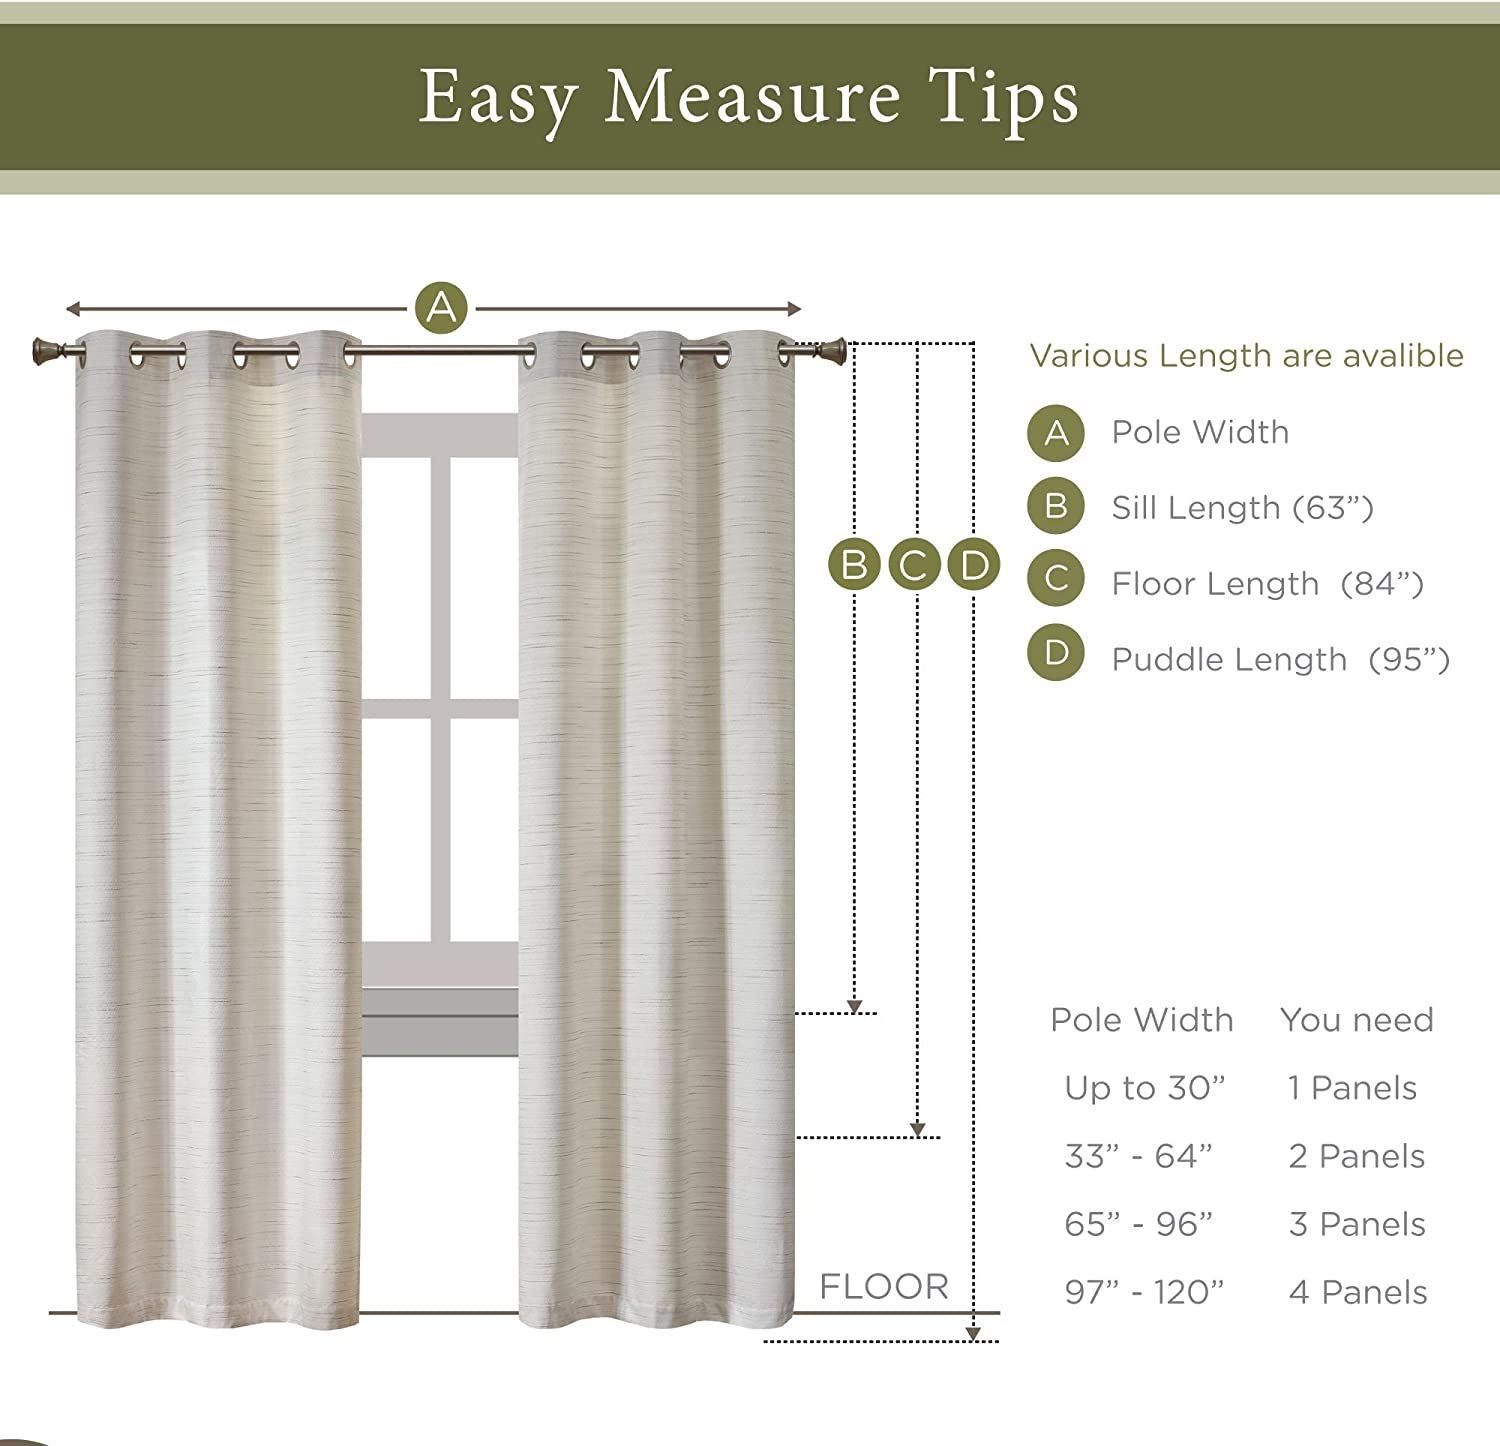 Buy Hyde Lane Rustic Modern Curtains For Living Room Farmhouse Bedroom Window Treatment Grasscloth Faux Linen Room Darkening Grommet Top Decor Off White 40x63 Inches 2 Panels Online In Indonesia B082m172z3